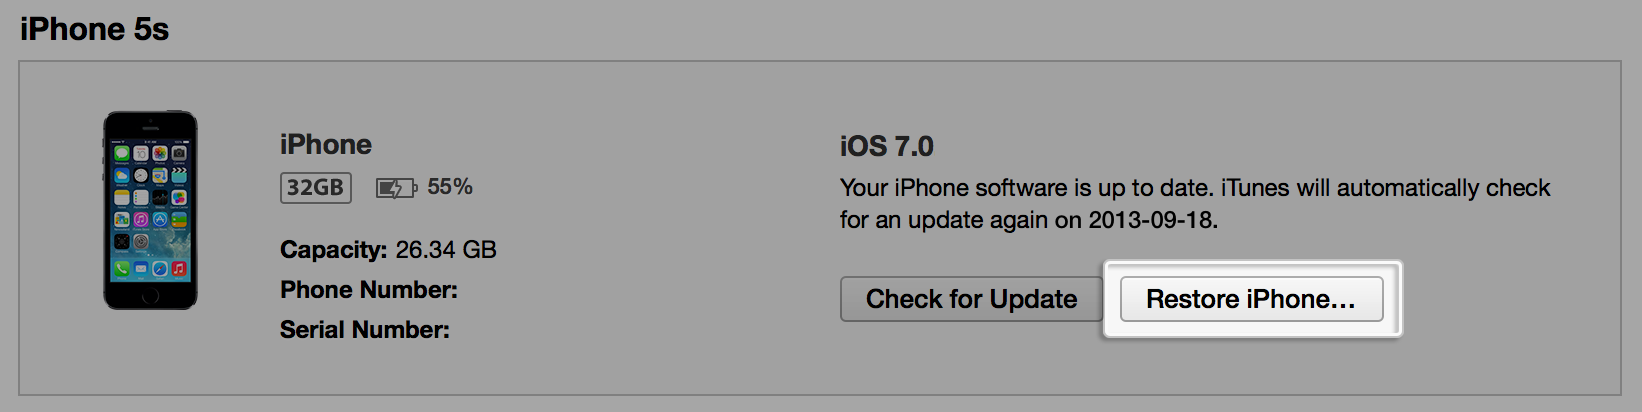 Restoring iOS software